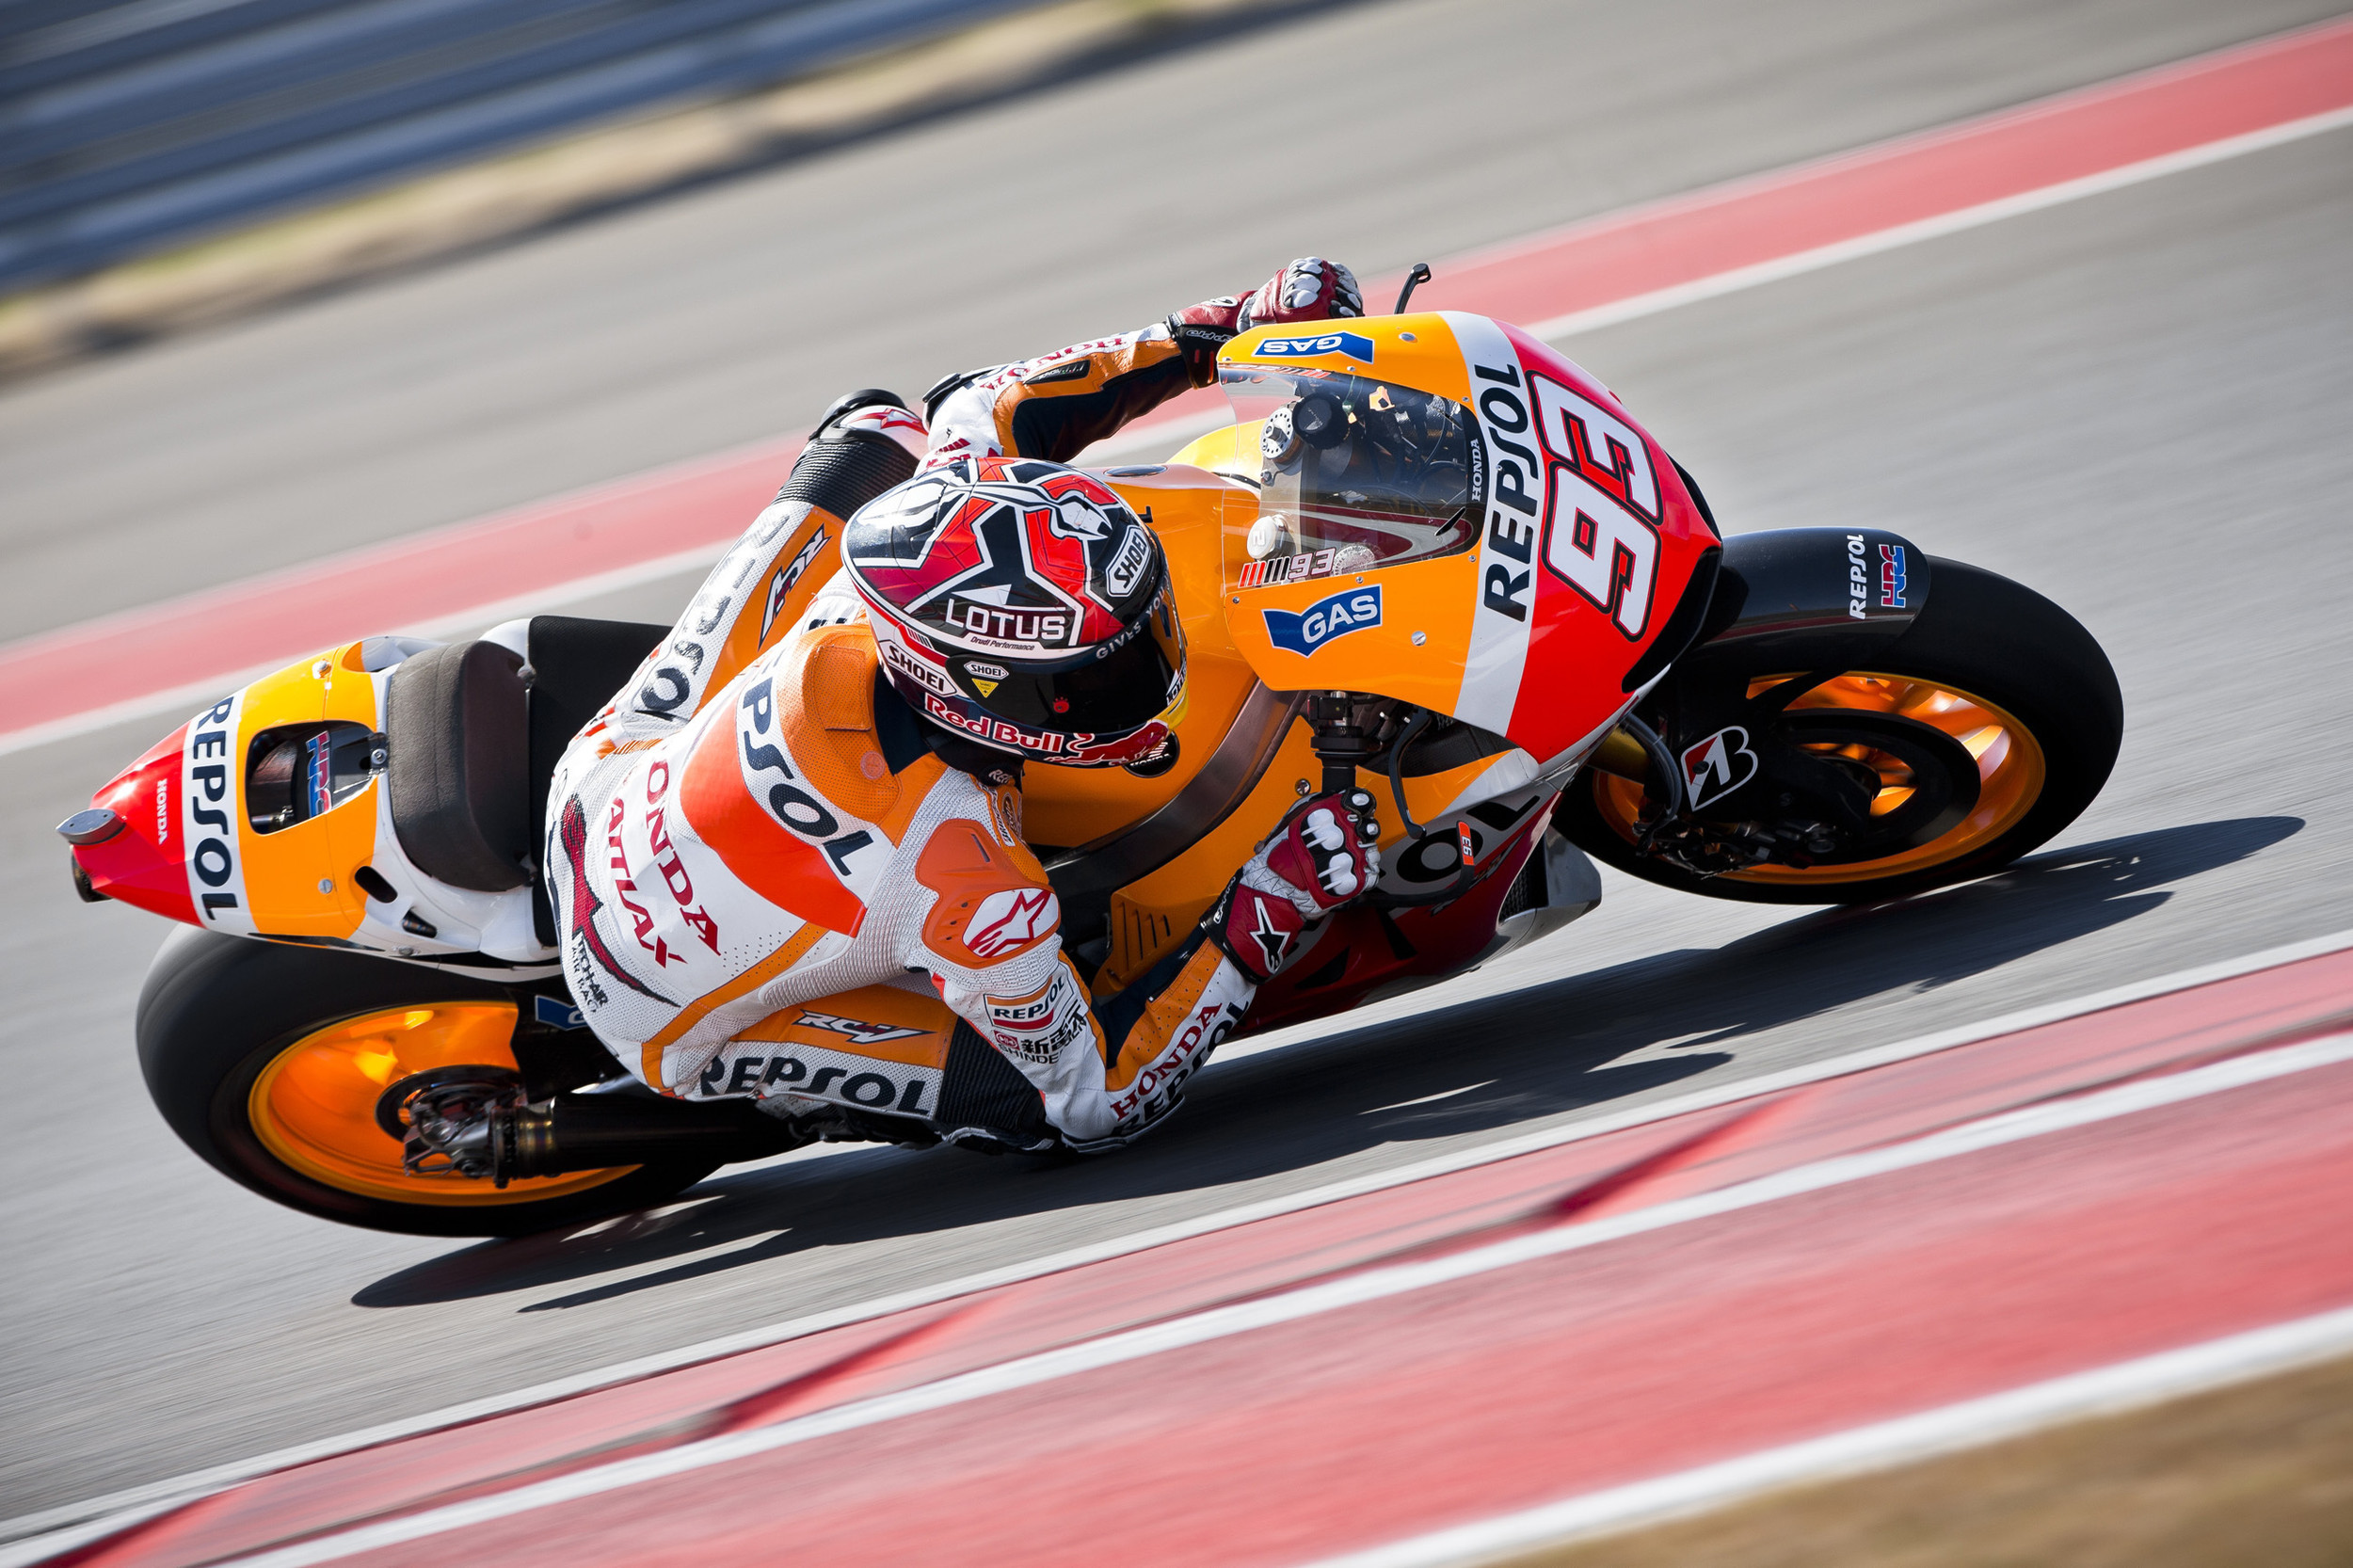 2013 MotoGP Takes Over the Circuits of the Americas Race Track